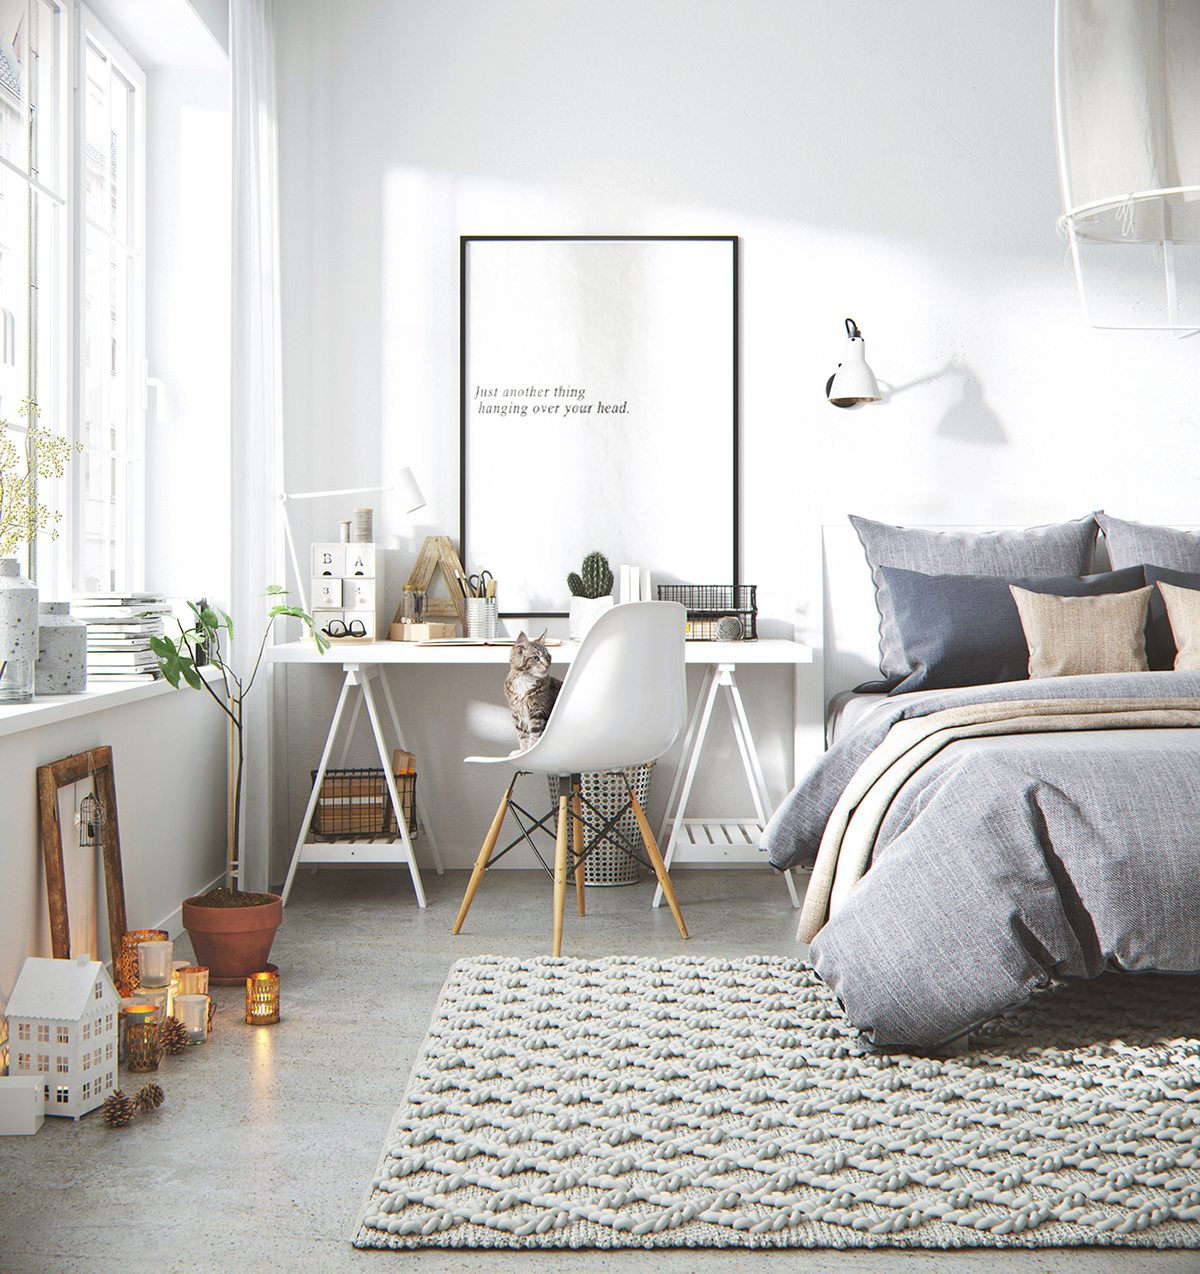 Cool Bedroom Backgrounds Bedroom Interior Design For Small Houses Bedroom Lighting Tumblr Simple Black And White Bedroom Ideas: Bright And Cheerful: 5 Beautiful Scandinavian-Inspired